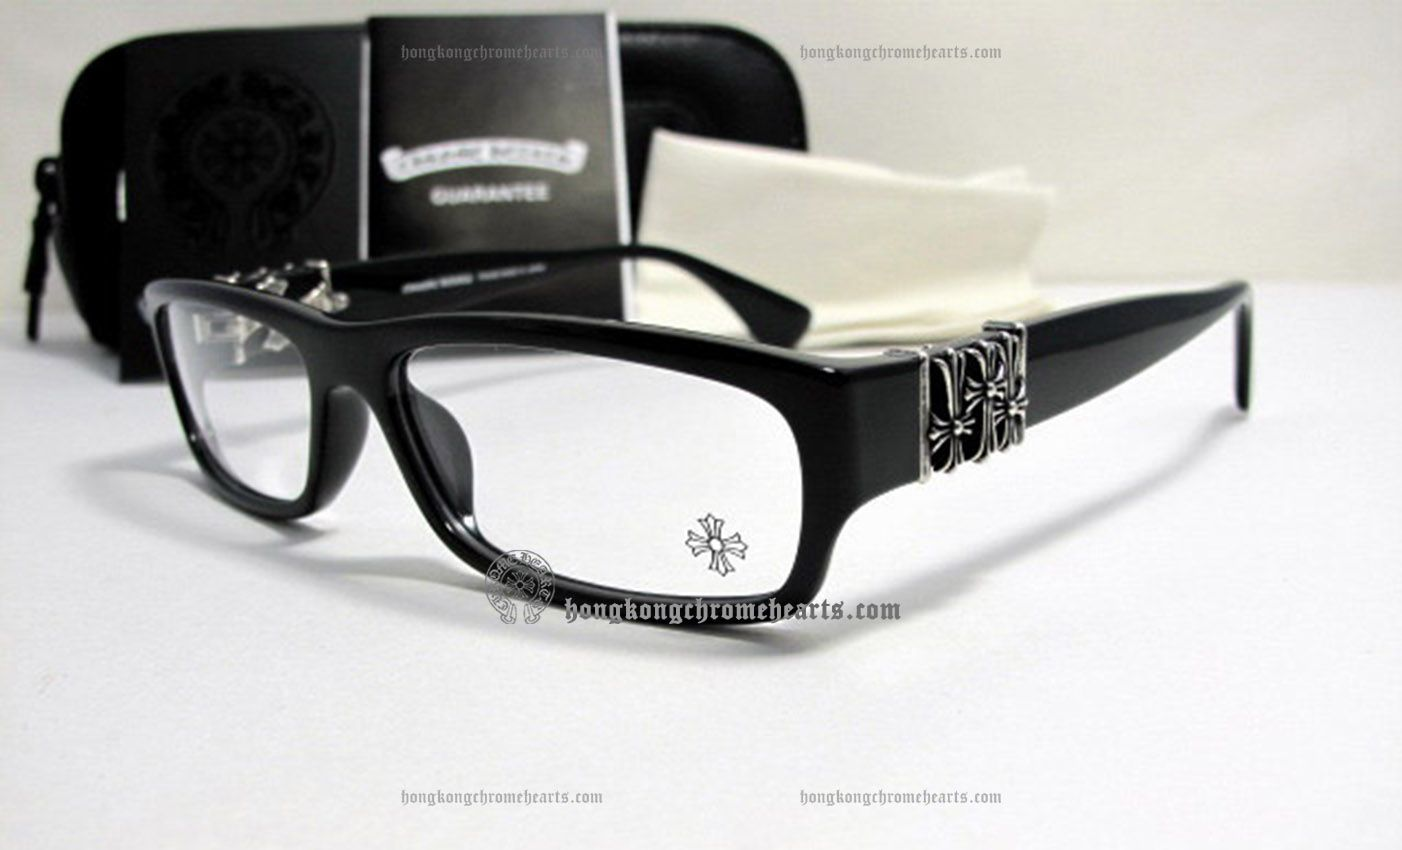 Fashion Below Me BK Chrome Hearts Eyeglasses for You | chrome hearts ...